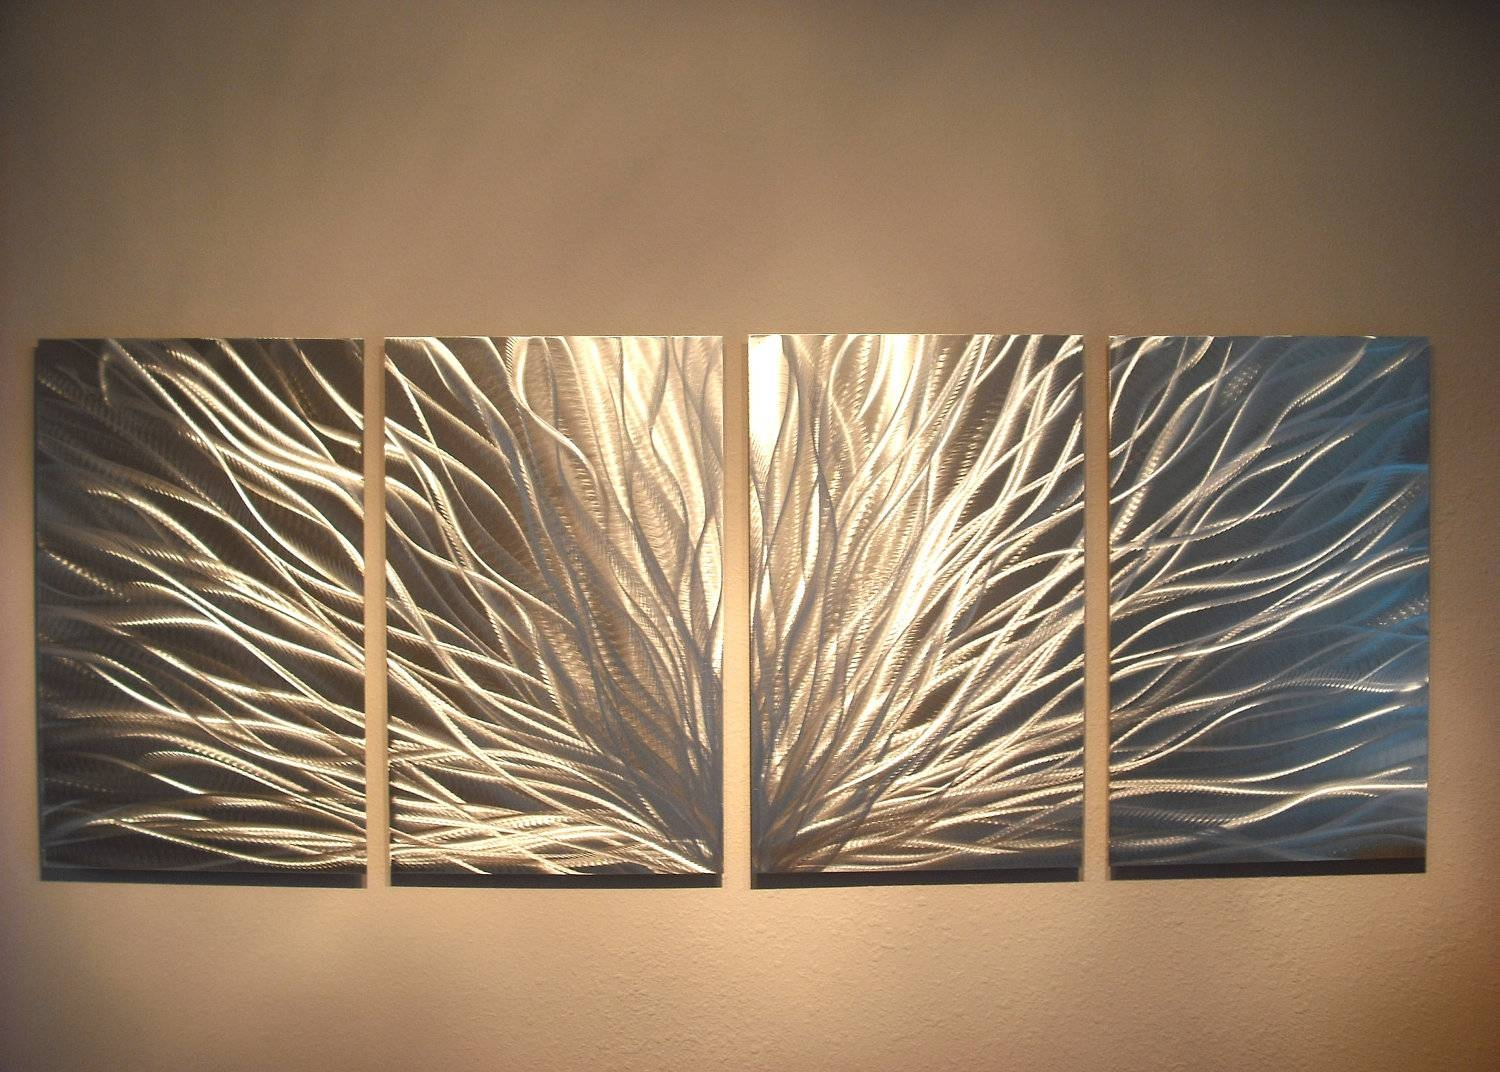 Radiance – Abstract Metal Wall Art Contemporary Modern Decor Pertaining To Most Recent Big Metal Wall Art (View 2 of 15)